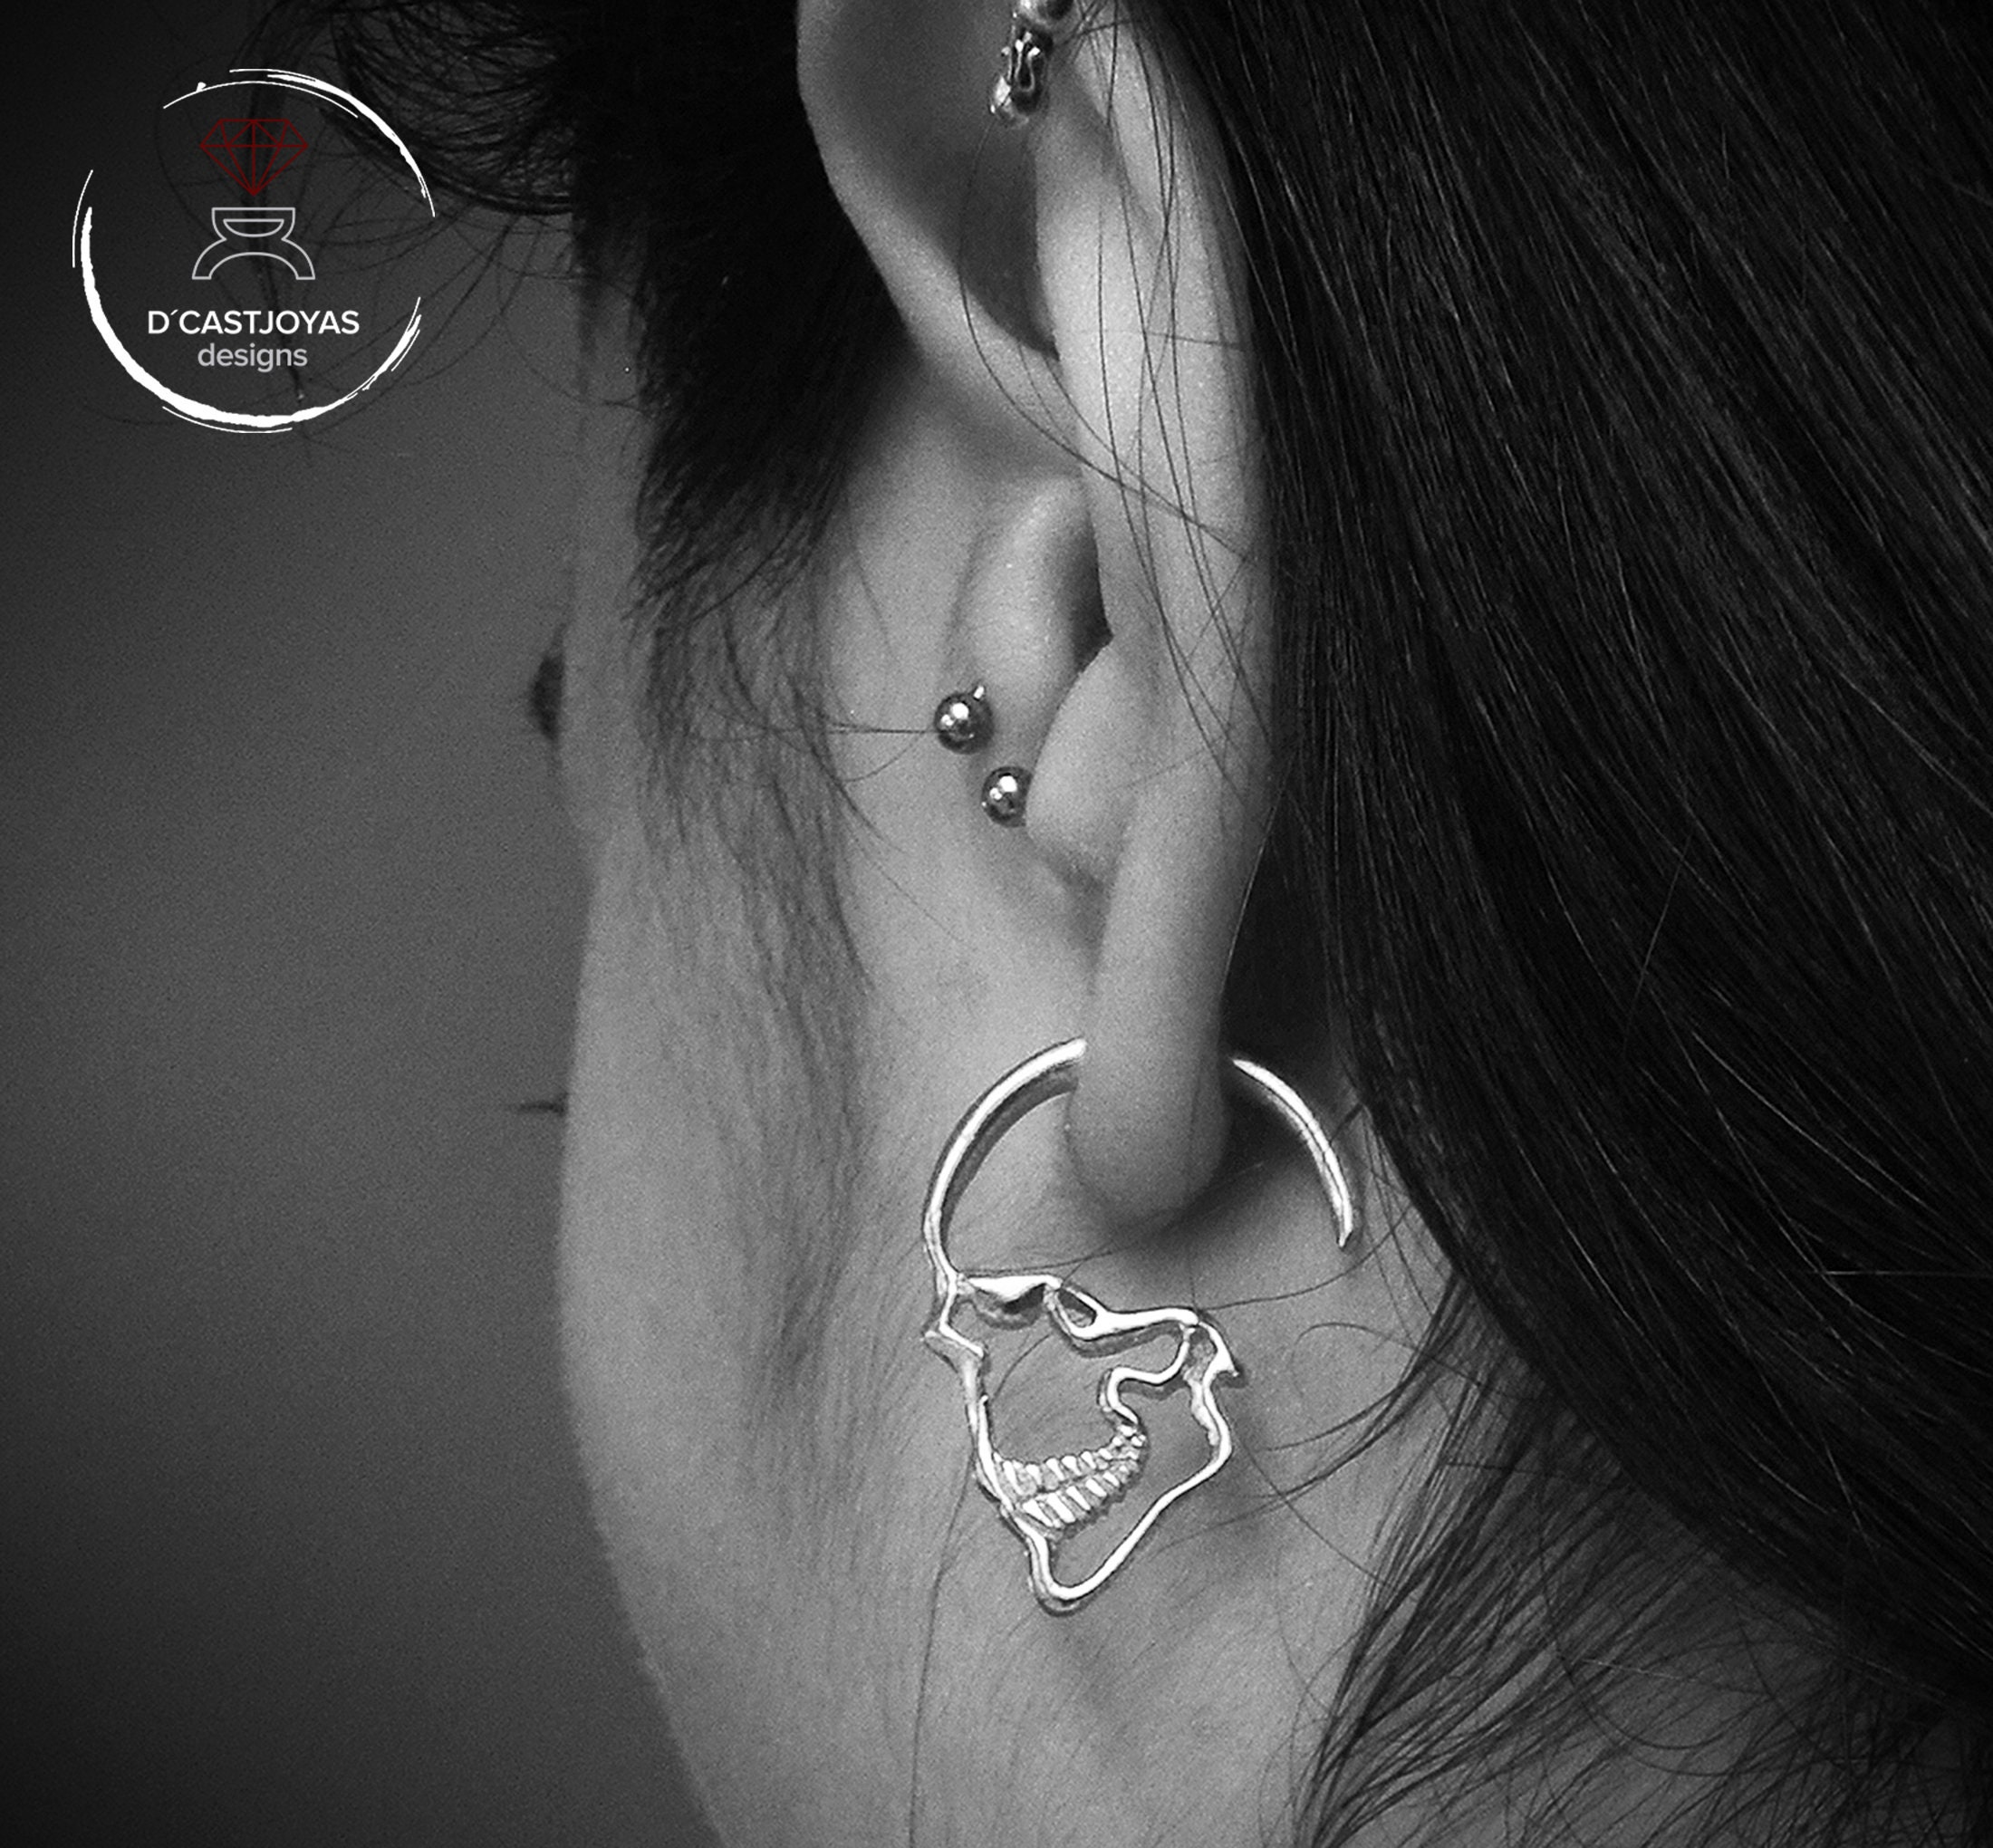 87779fc2fa815 Silver Skull Earrings, Hoop earrings men, Silver earrings profile ...